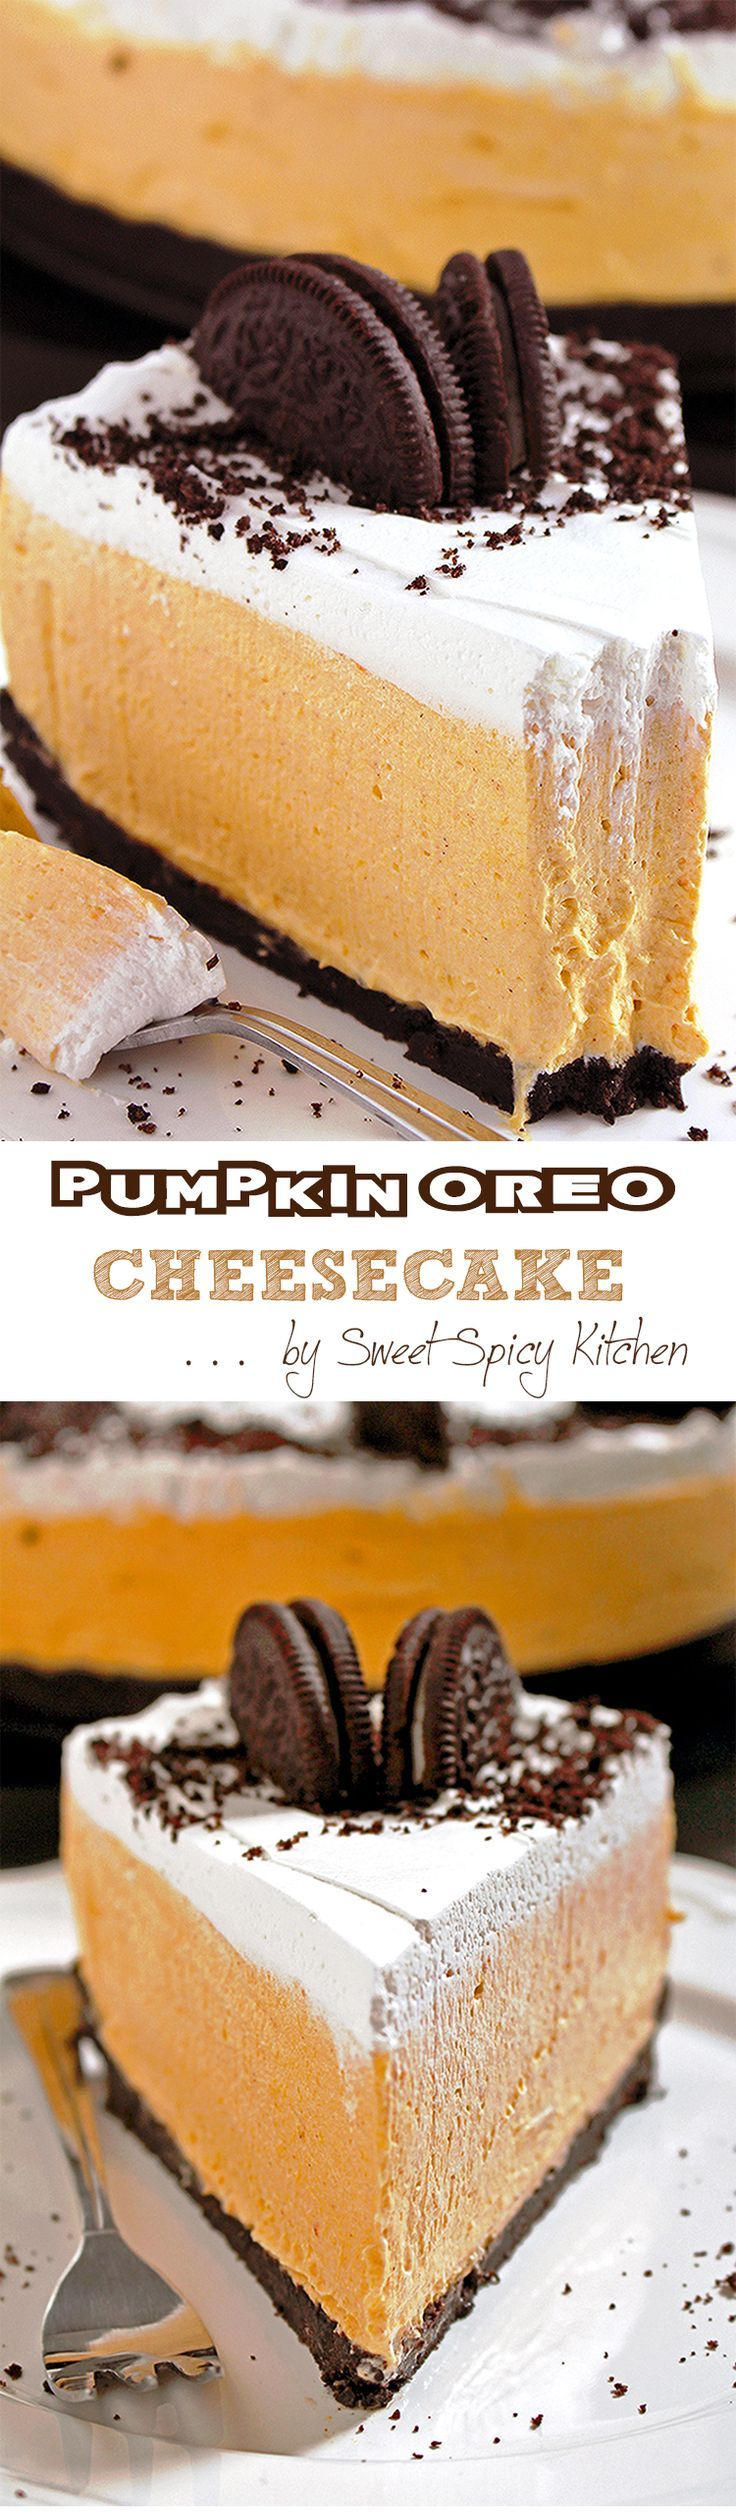 Oct 15, 2016 Easy No Bake Pumpkin Oreo Cheesecake a great homemade holiday dessert! Oreo crust, rich pumpkin cheesecake filling and whipping cream topping.